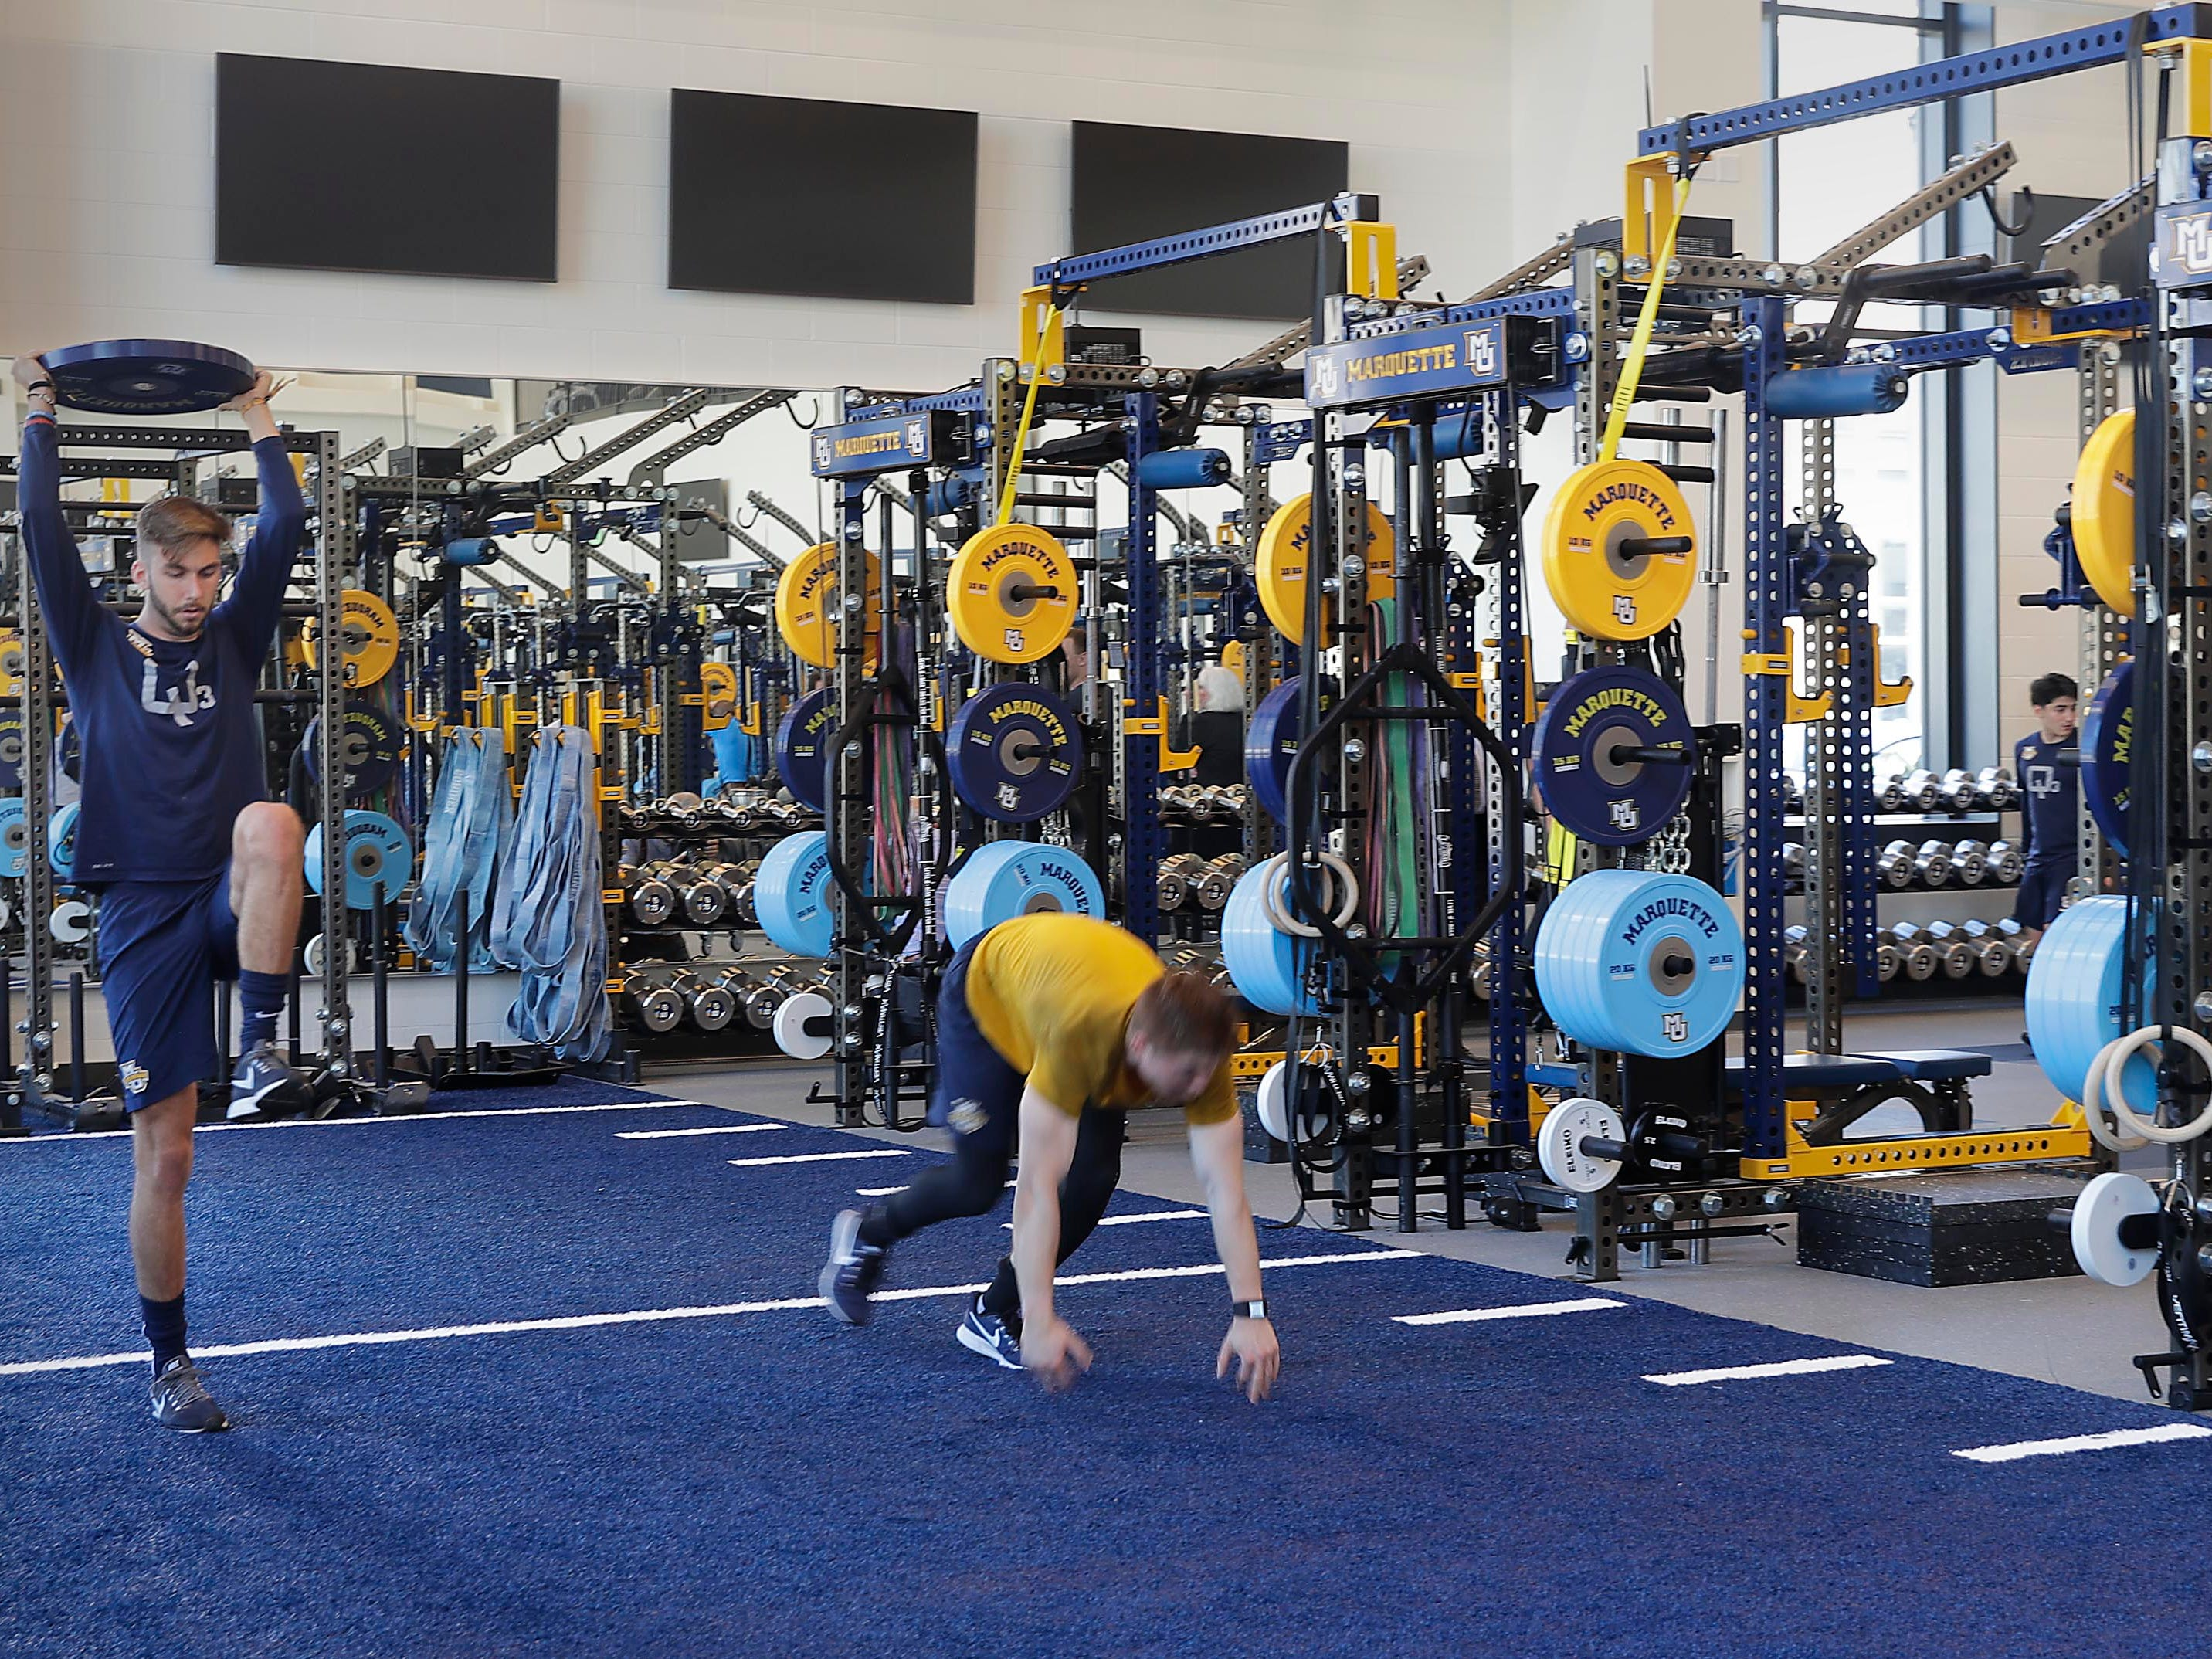 The $24 million Athletic and Human Performance Research Center at Marquette University features a large space for strength and conditioning. The center is located across from the Al McGuire Center.